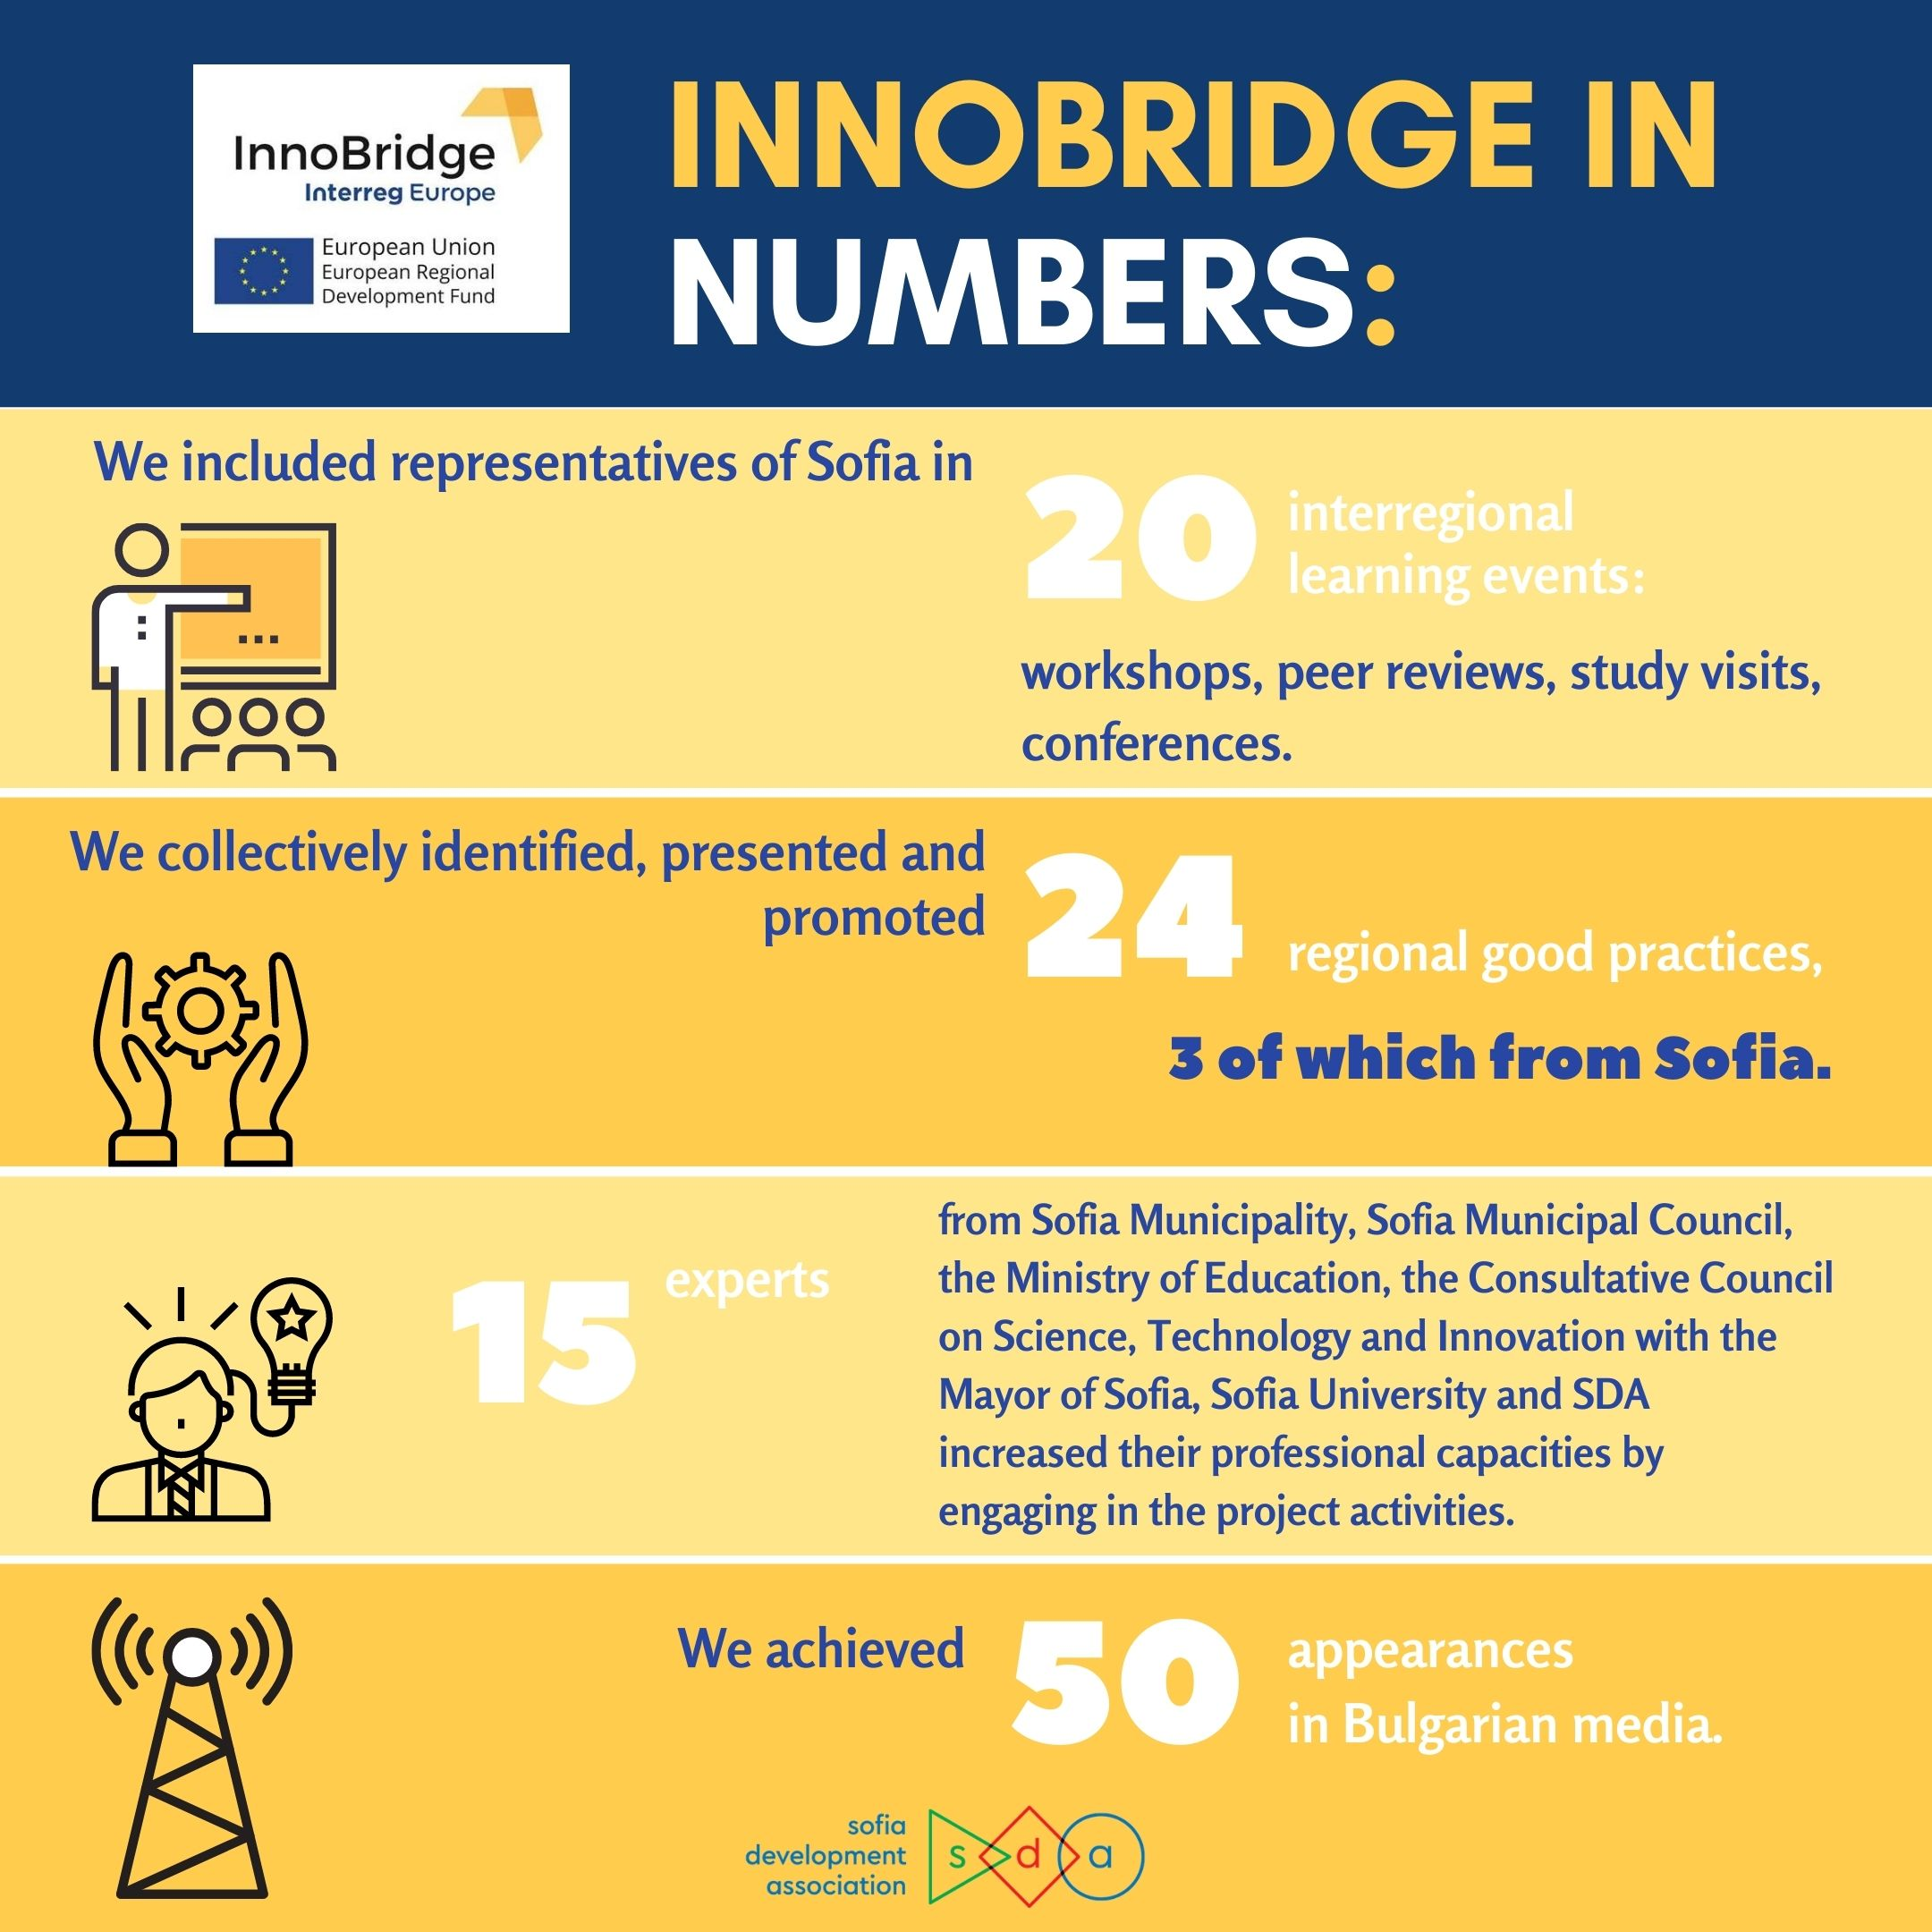 WHAT WE ACHIEVED WITH INNOBRIDGE PROJECT